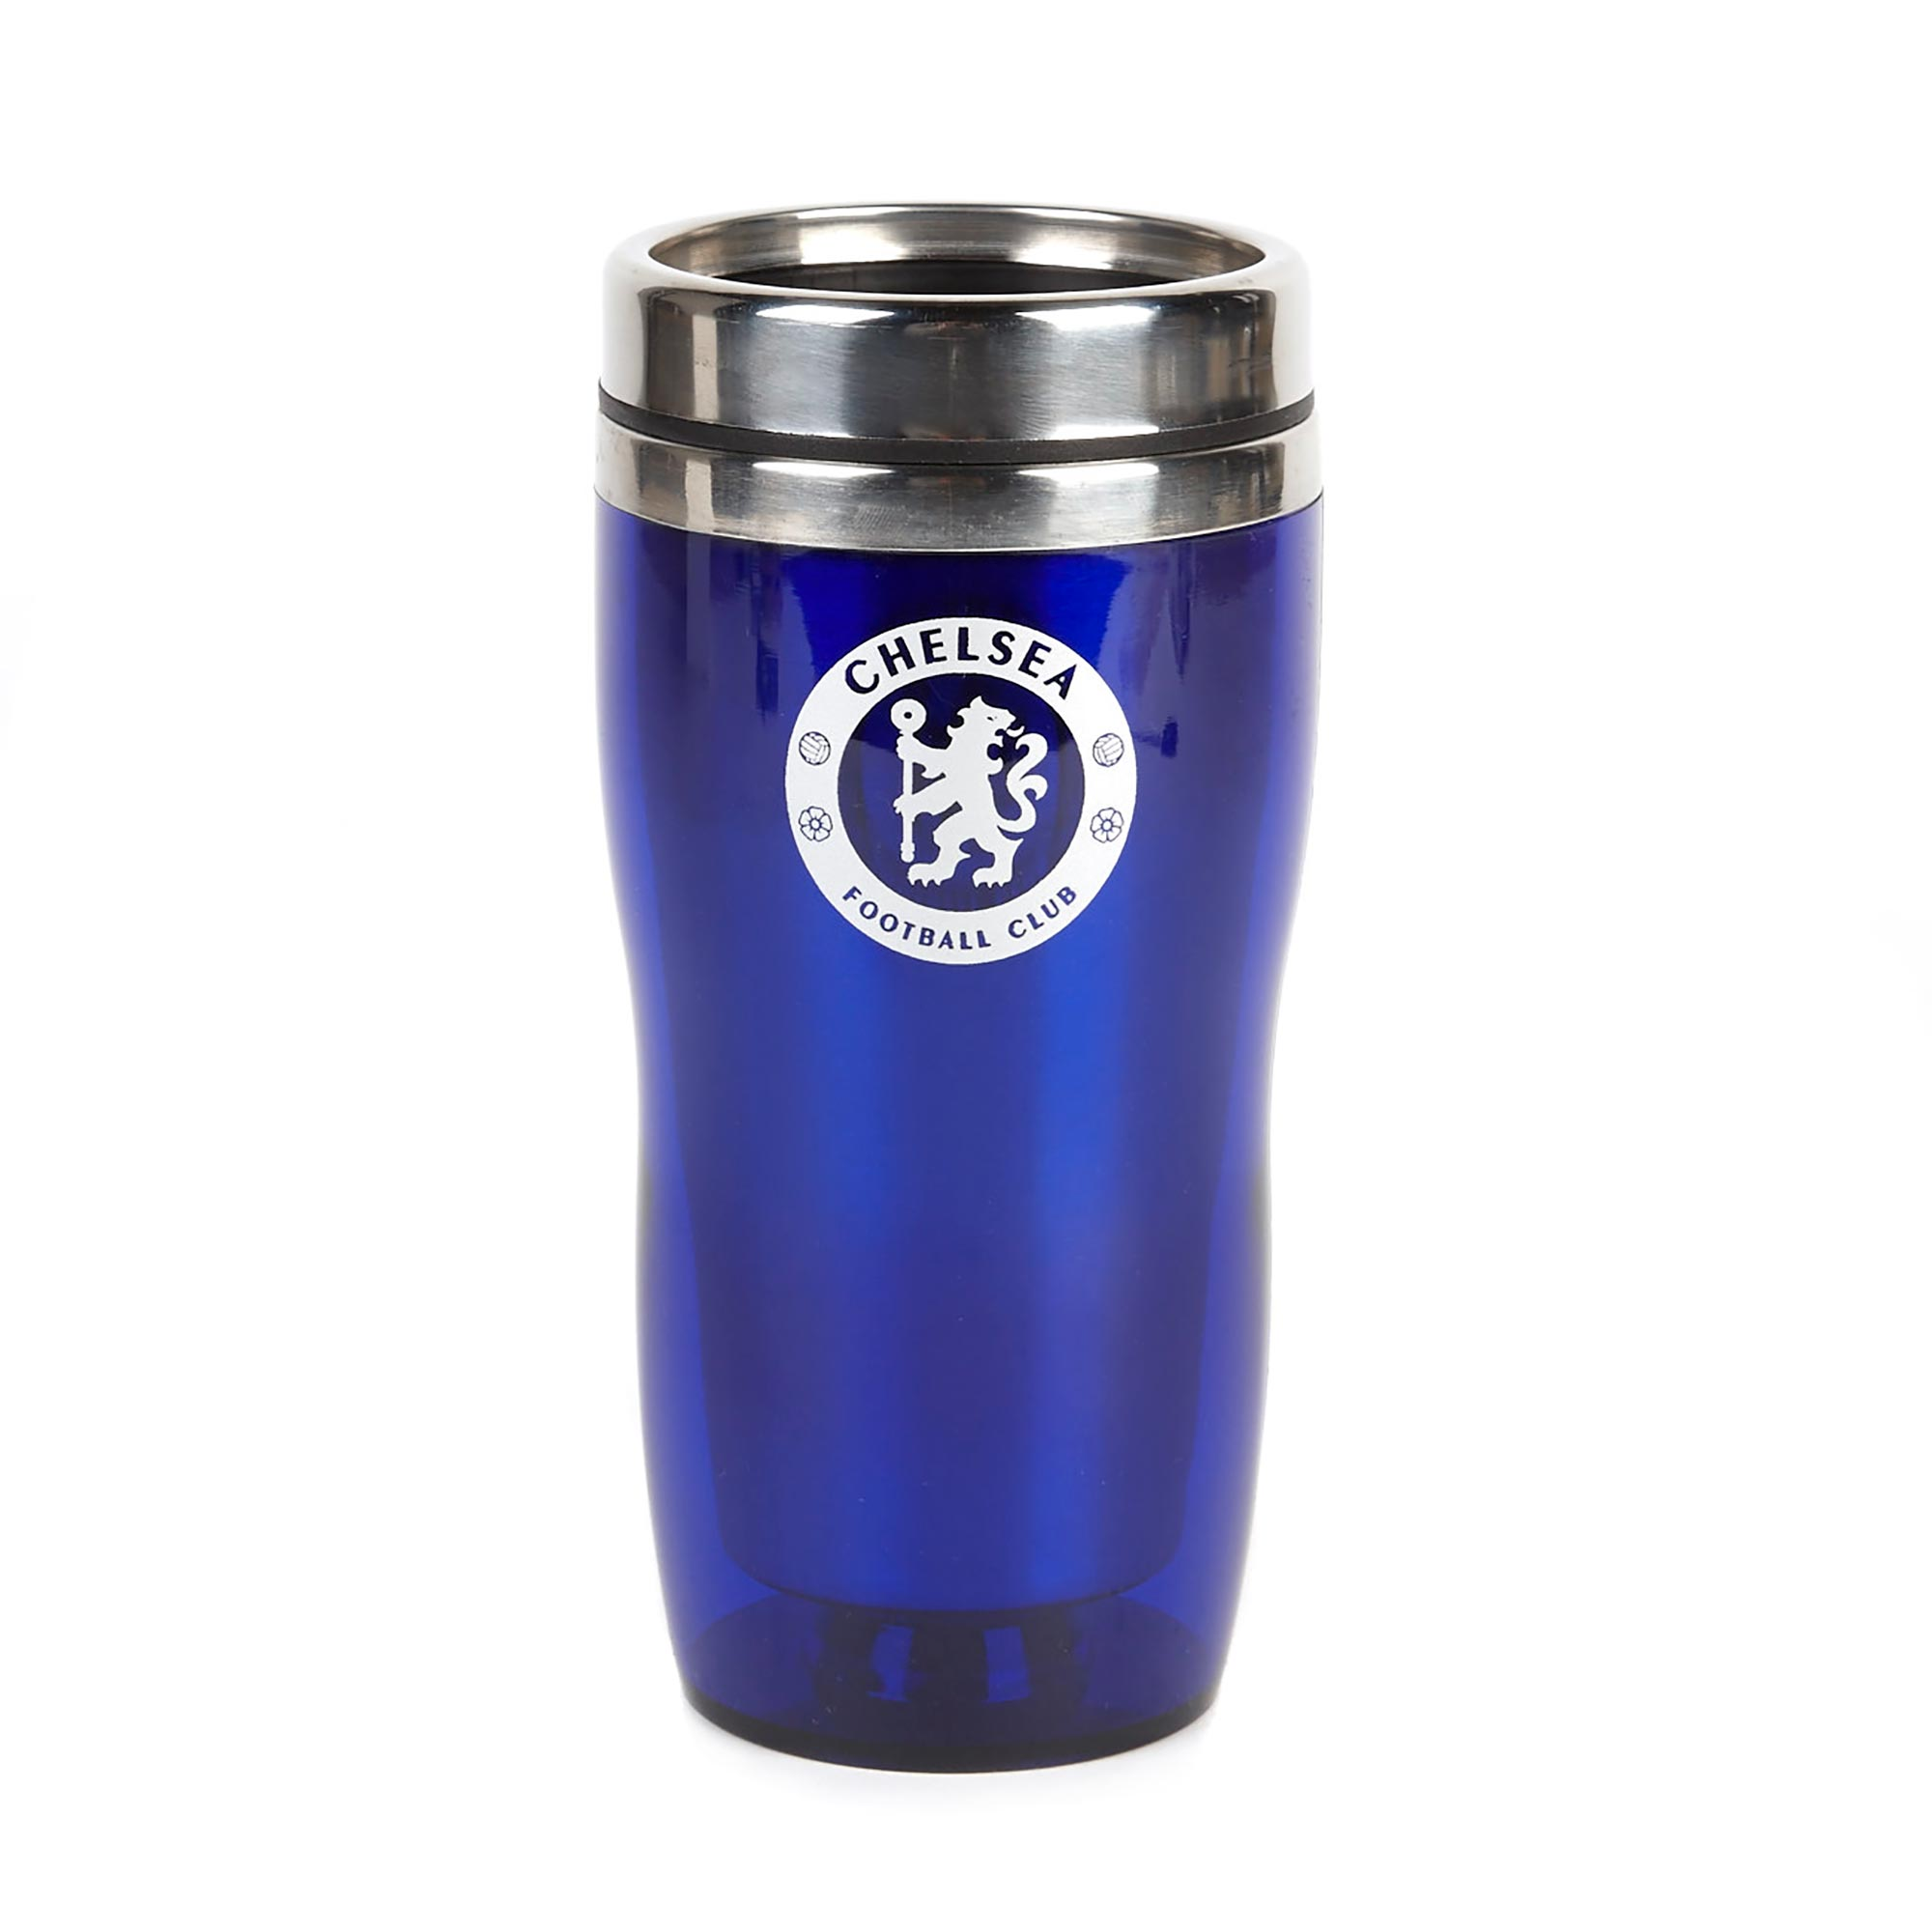 Chelsea Executive Travel Mug Capacity 450ml. Complete with Stainless Steel inner. Suitable for both hot and cold beverages.